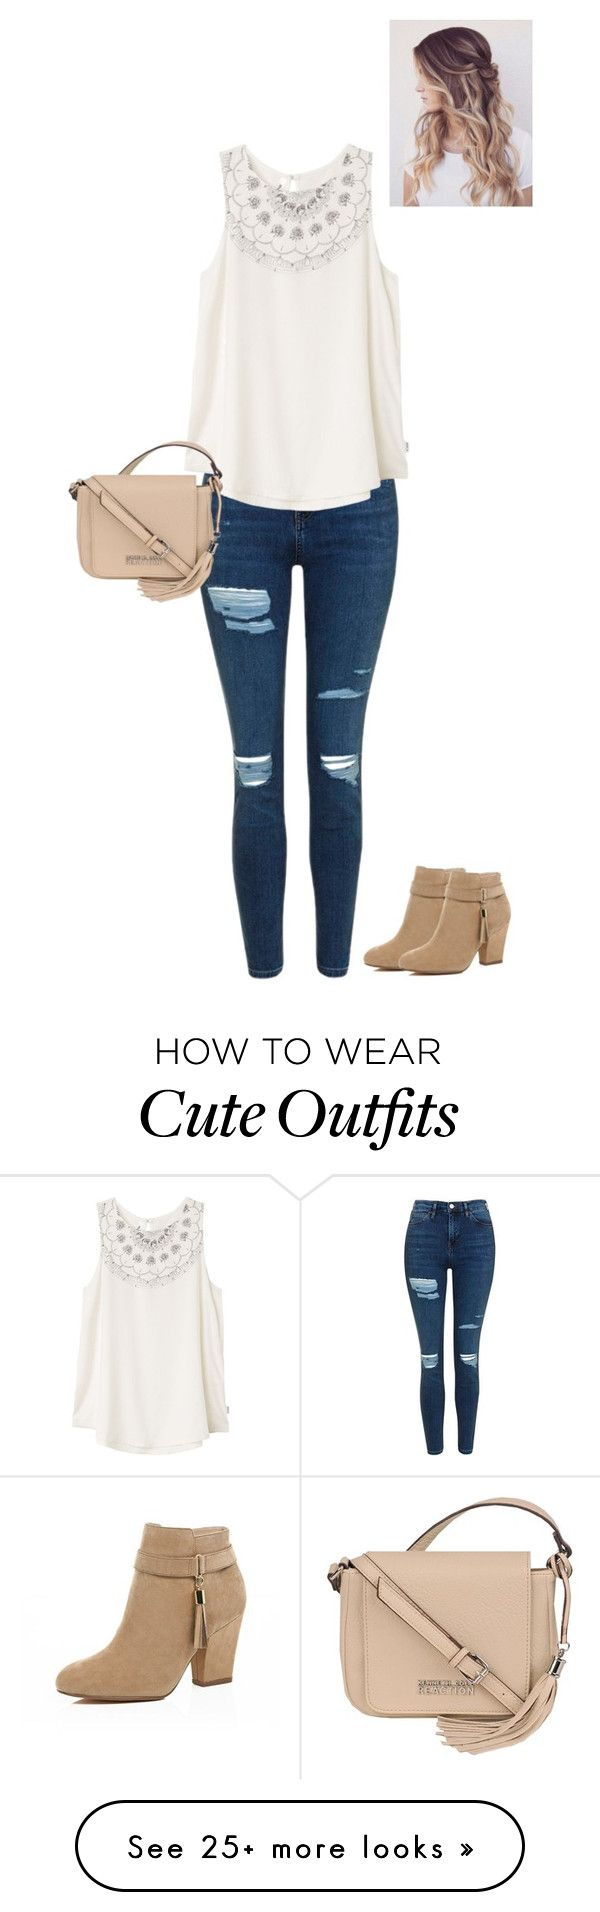 """Cute Summer Church Day outfit <3"" by loveisforever32 on Polyvore featuring…"